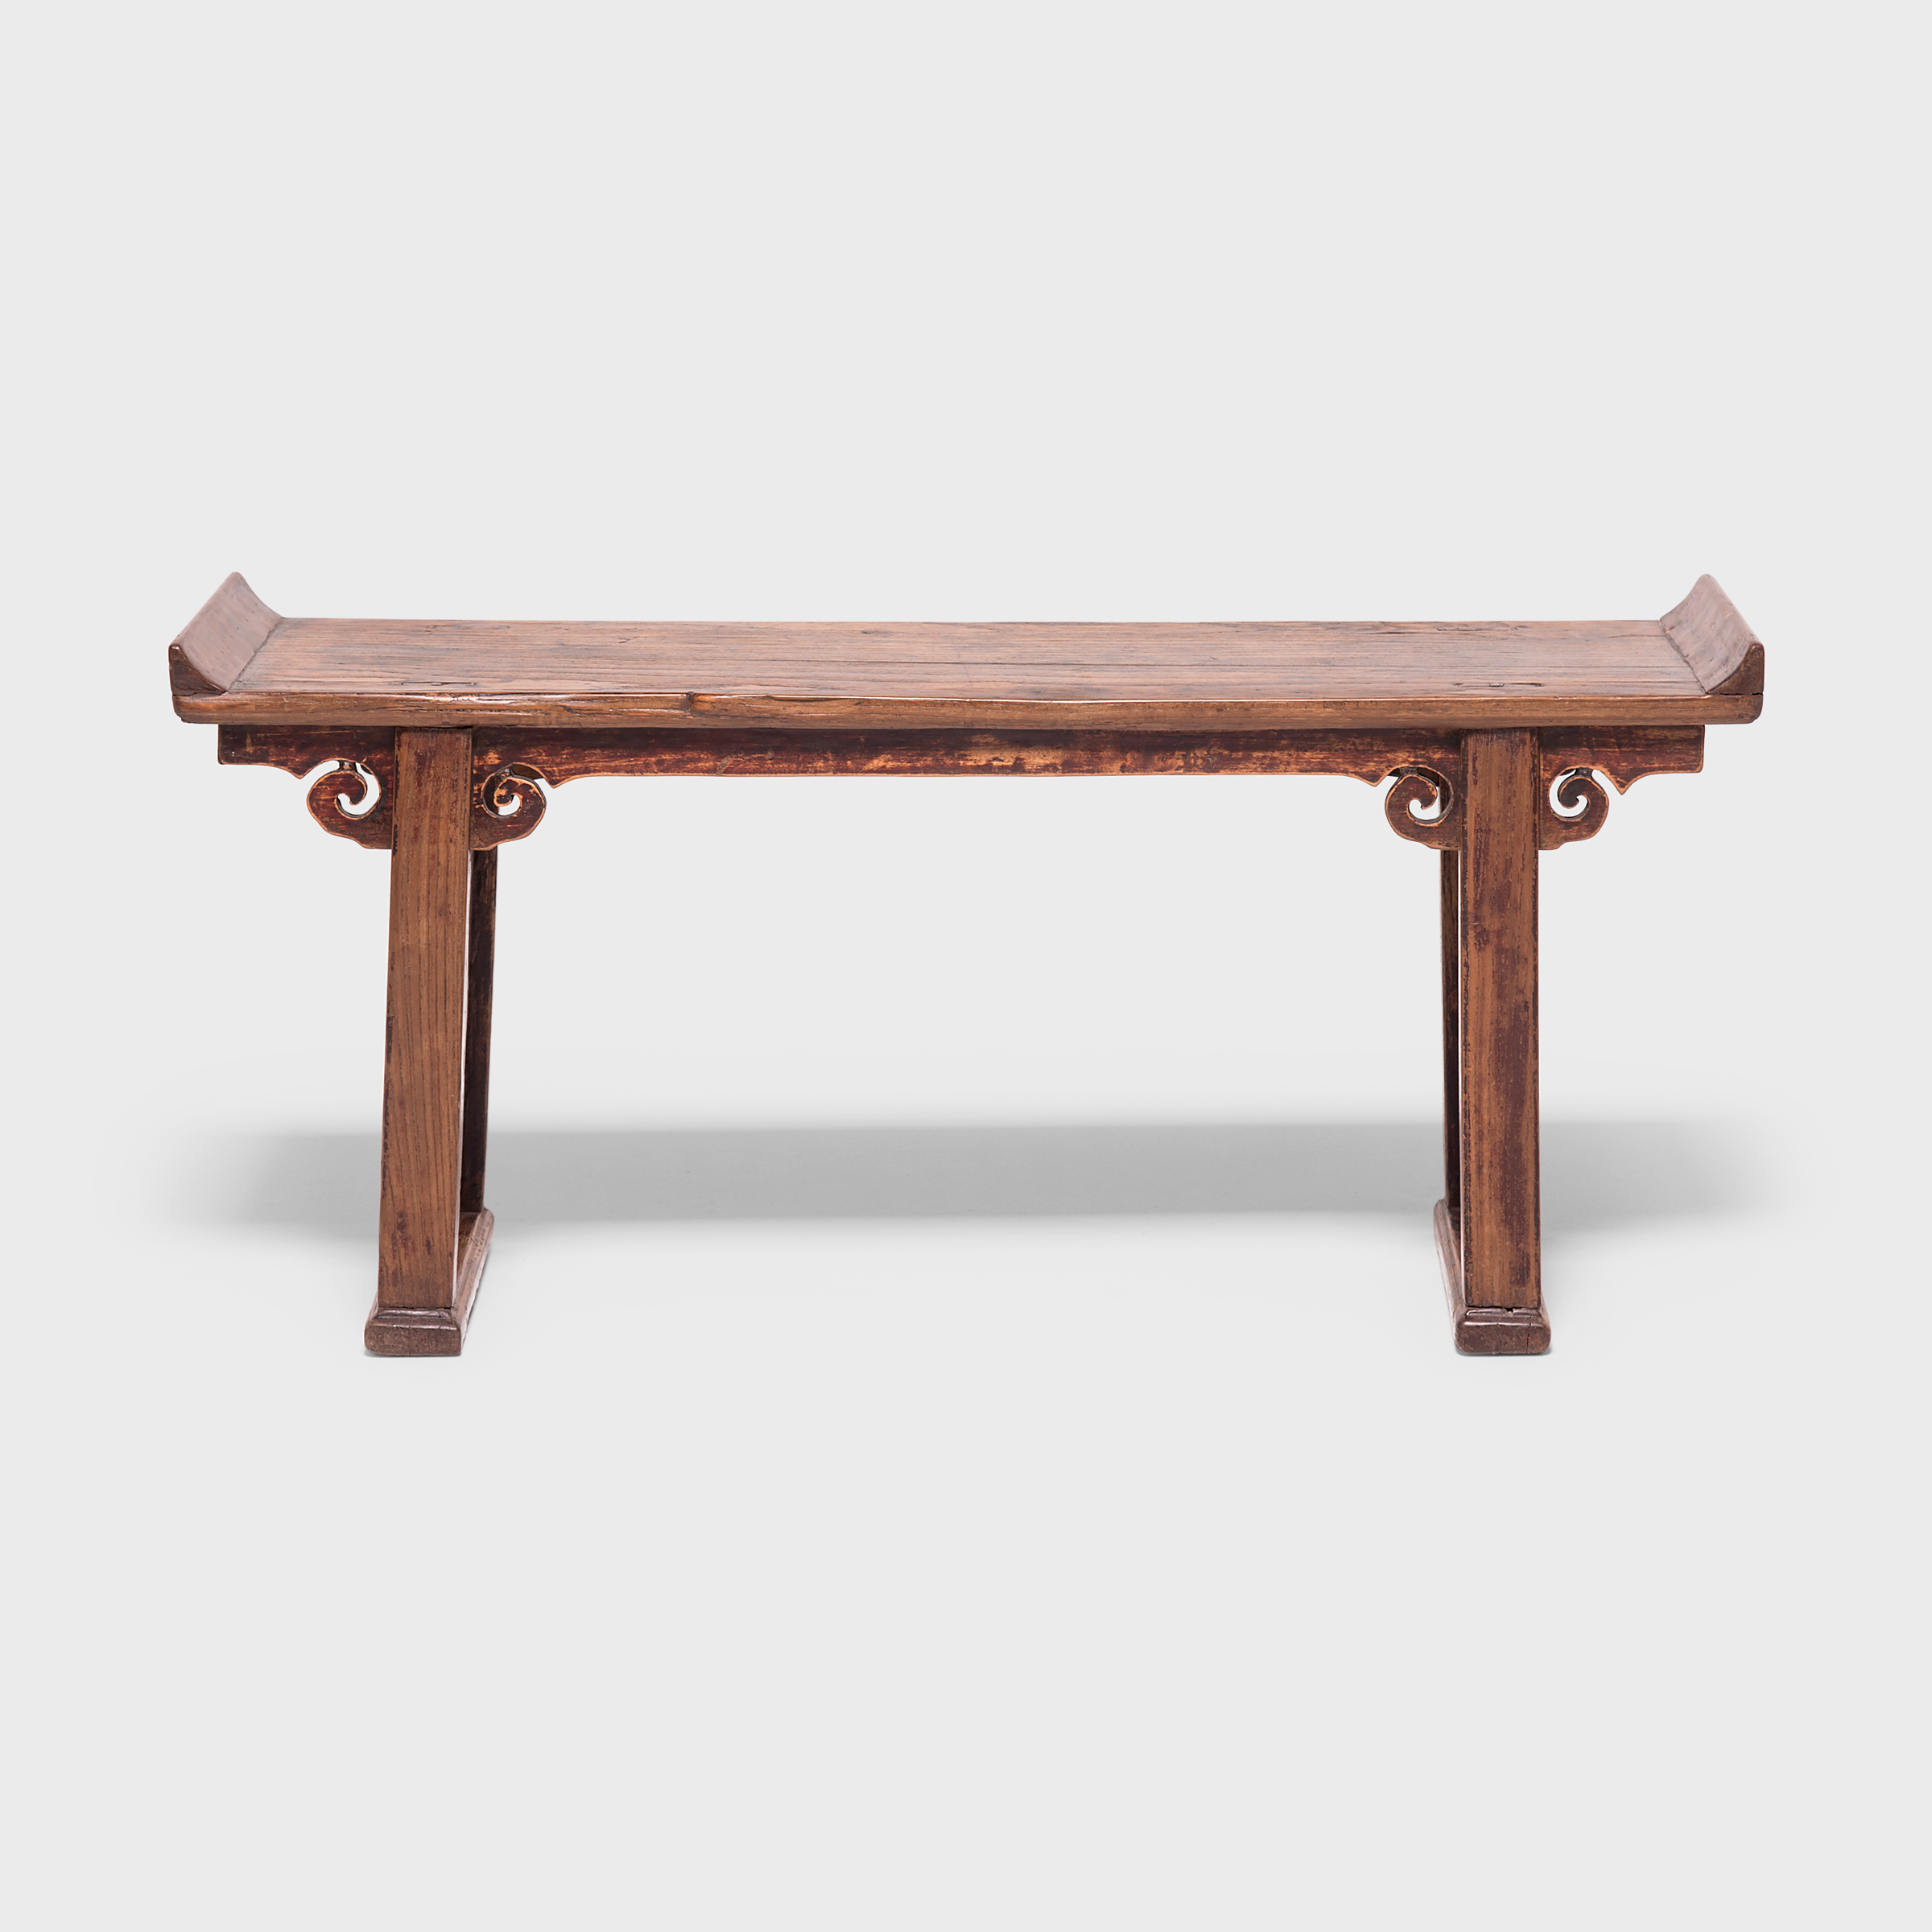 Chinese Benches and Asian Antique Benches | PAGODA RED